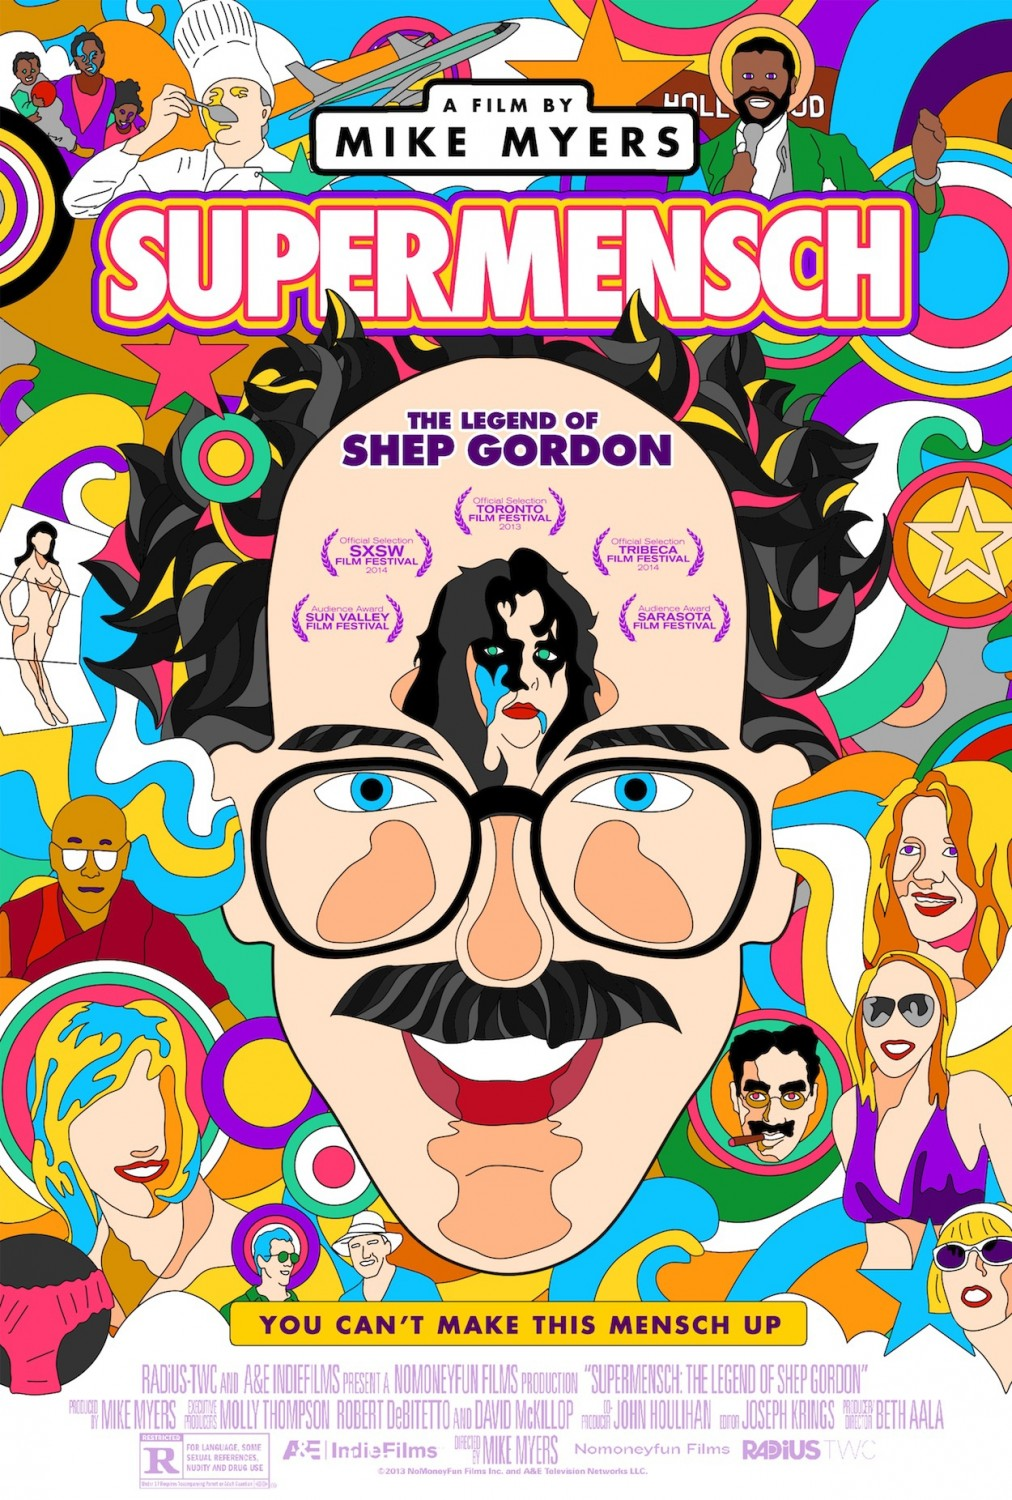 [Crítica] Supermensch: The Legend of Shep Gordon